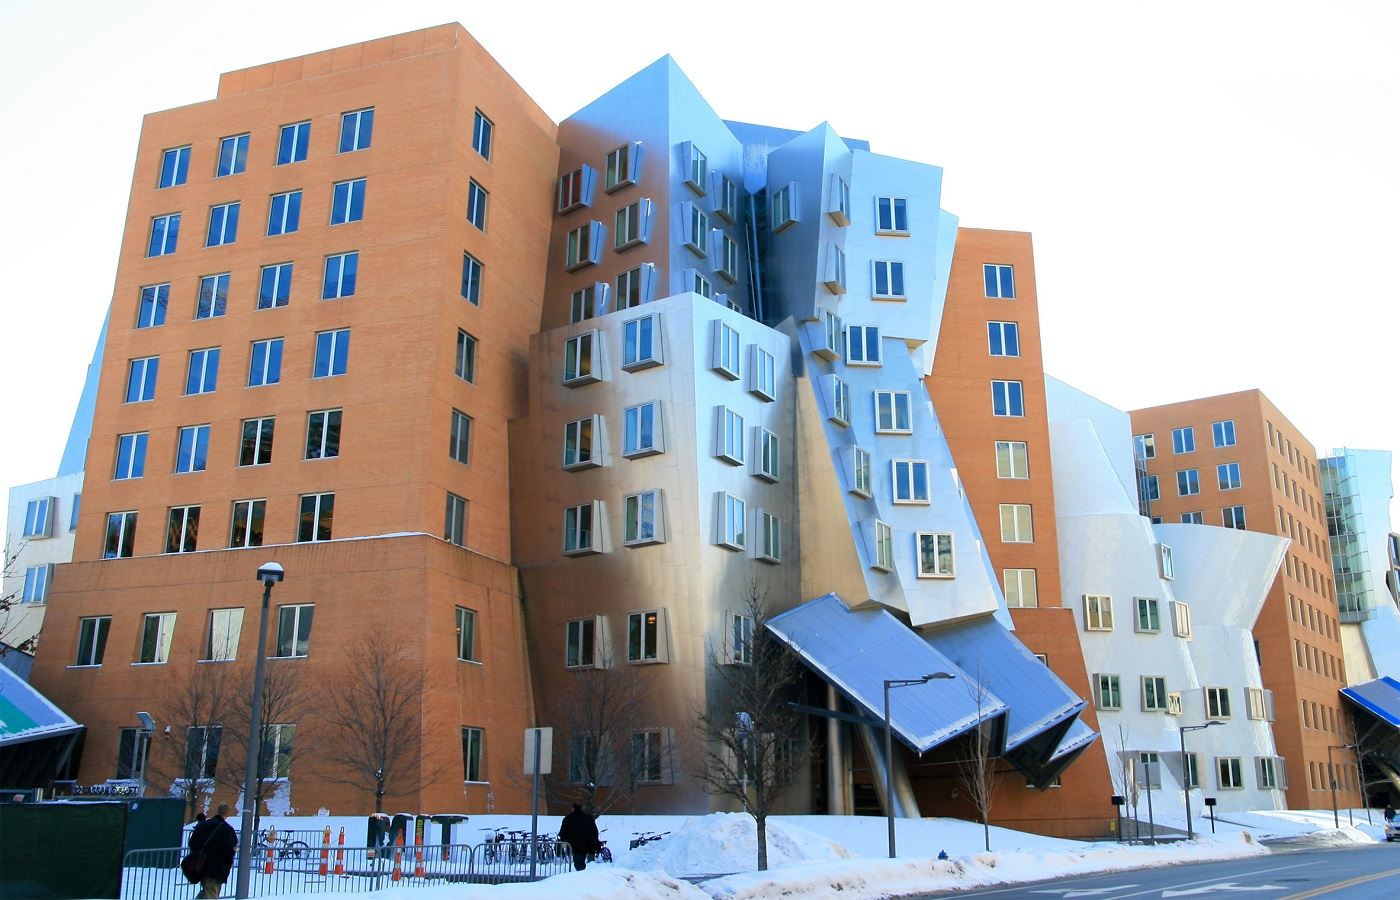 The Ray and Maria Stata Center at MIT